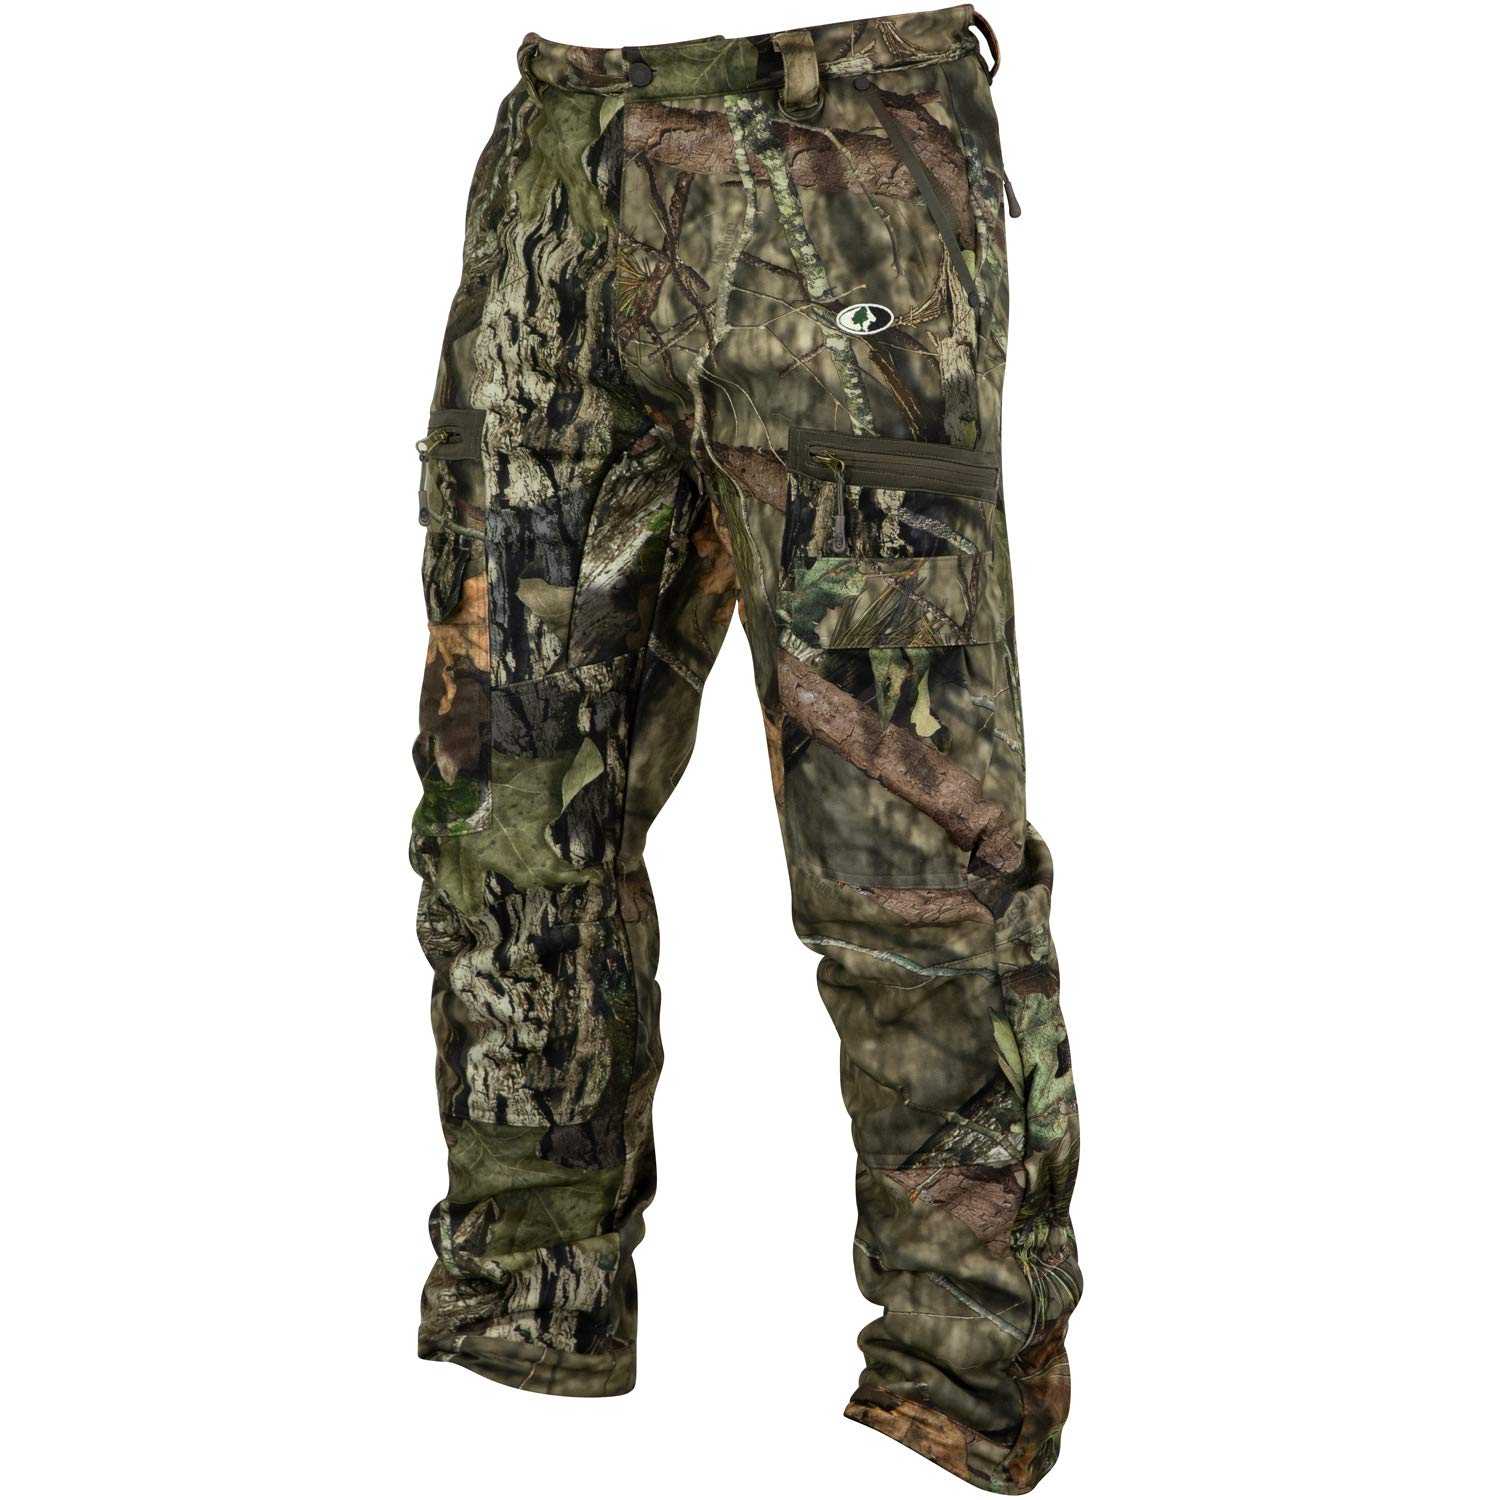 Mossy Oak Sherpa 2.0 Fleece Lined Camo Hunting Pants for Men, Hunting Clothes by Mossy Oak